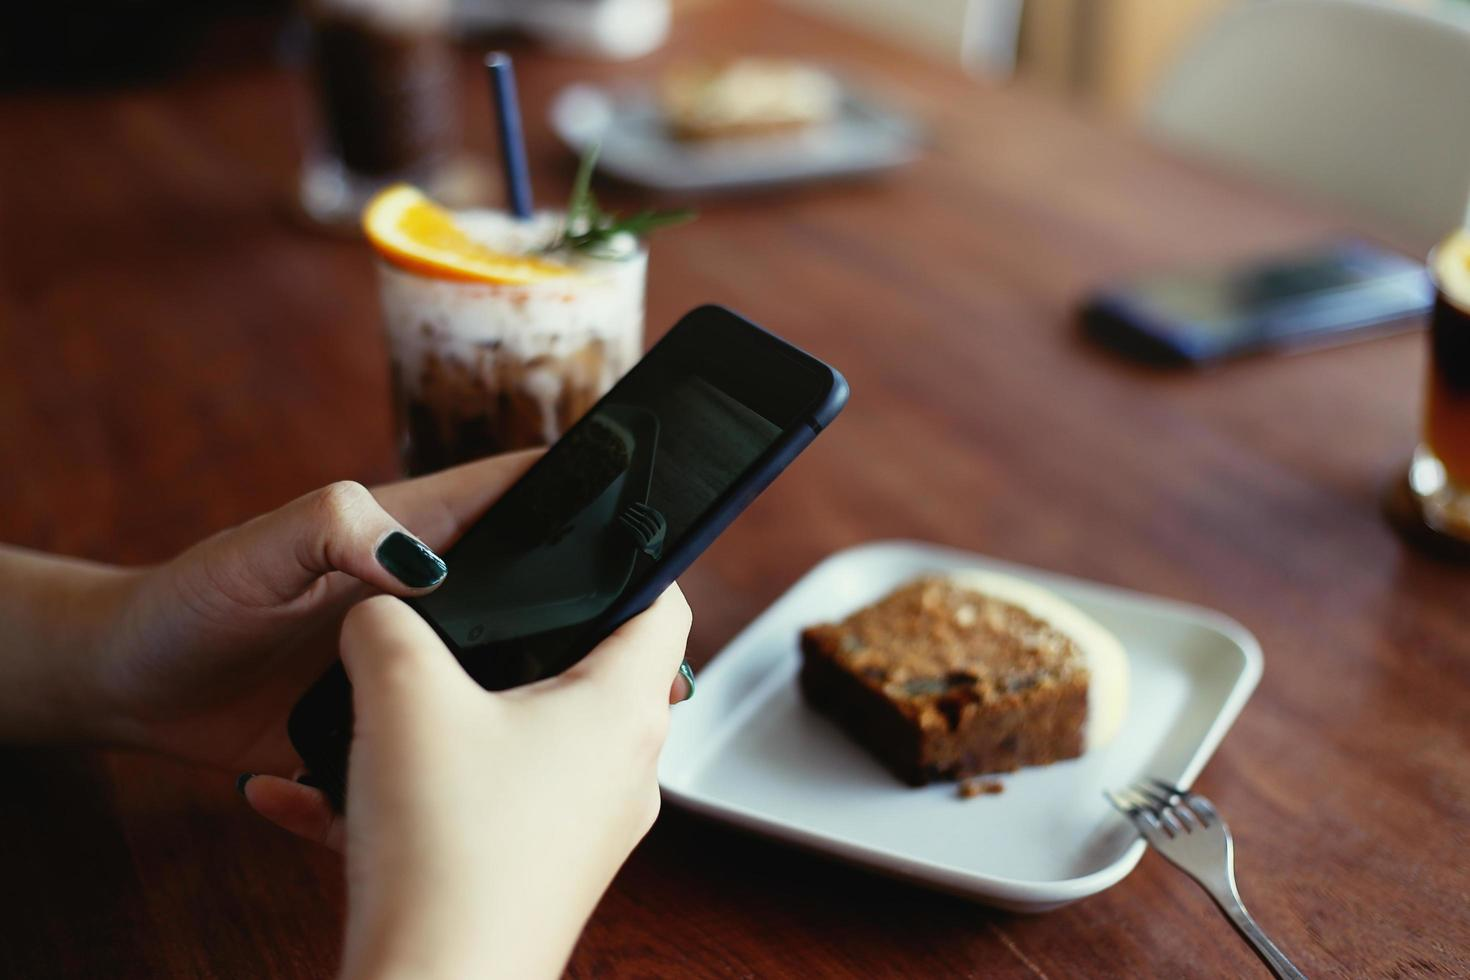 Girl ues mobile phone during coffee break in cafe photo